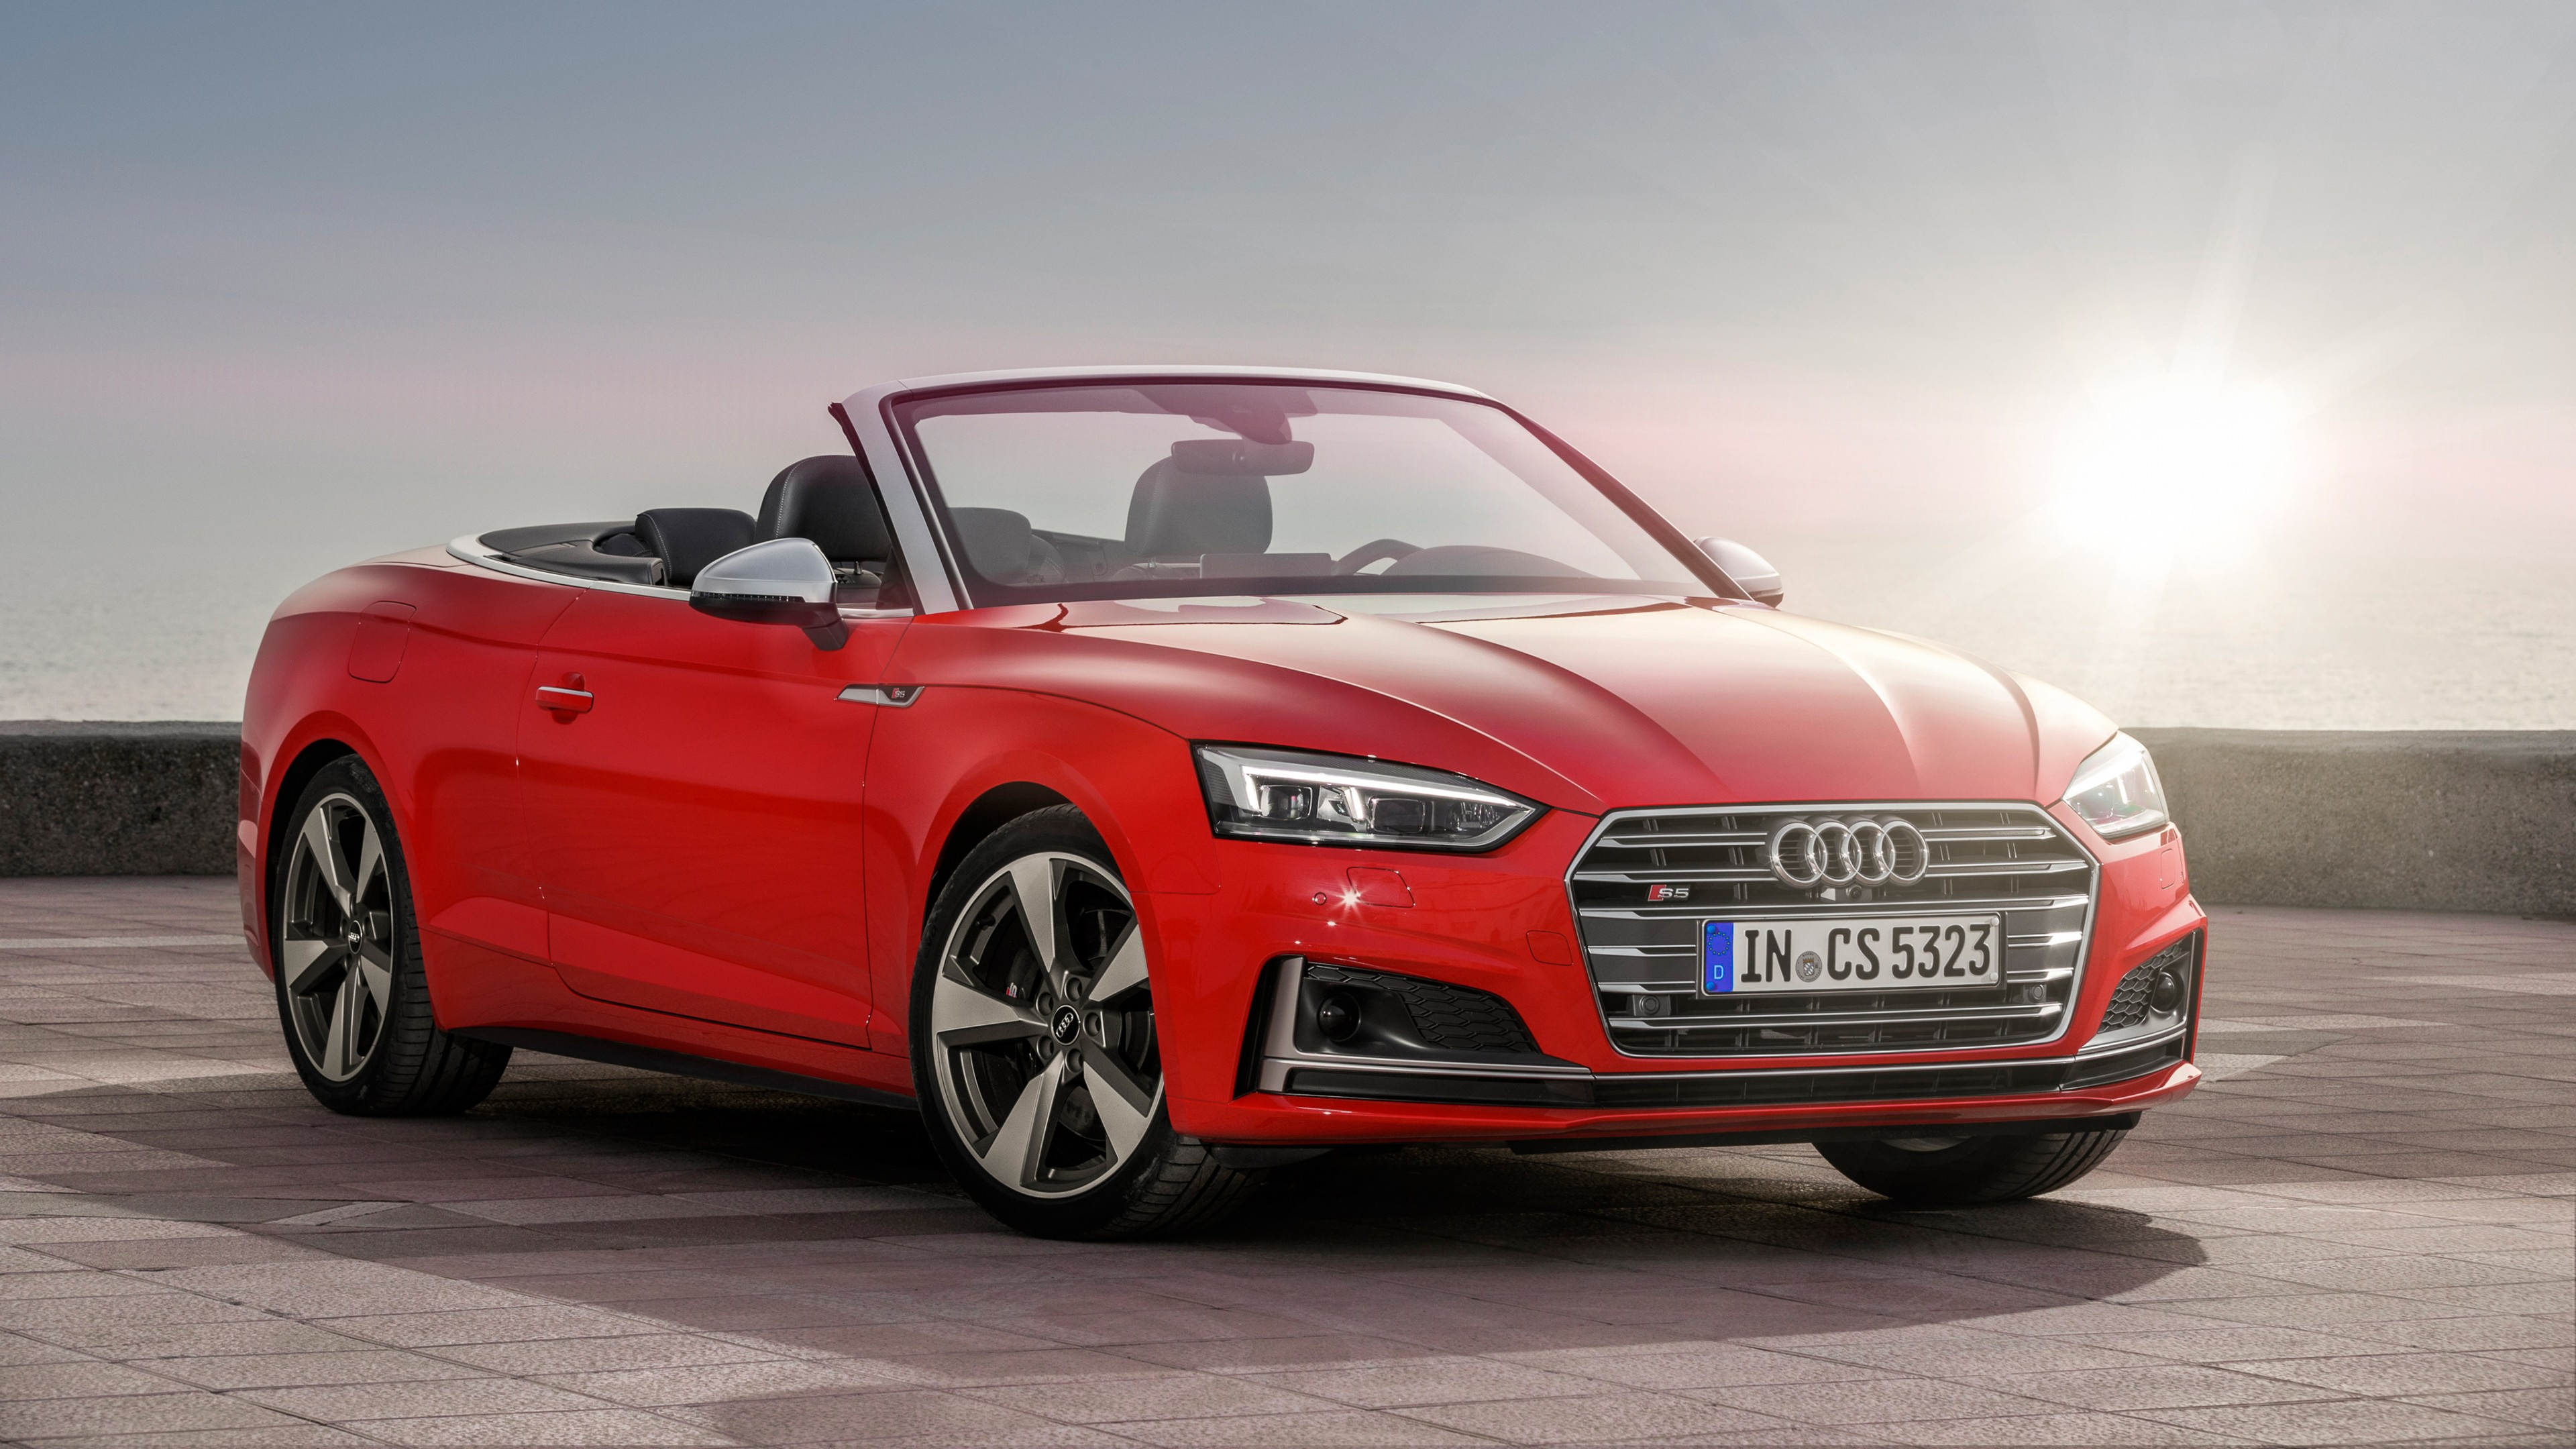 2017 audi s5 cabriolet 4k wallpaper hd car wallpapers id 7475 - Car wallpapers for galaxy s5 ...